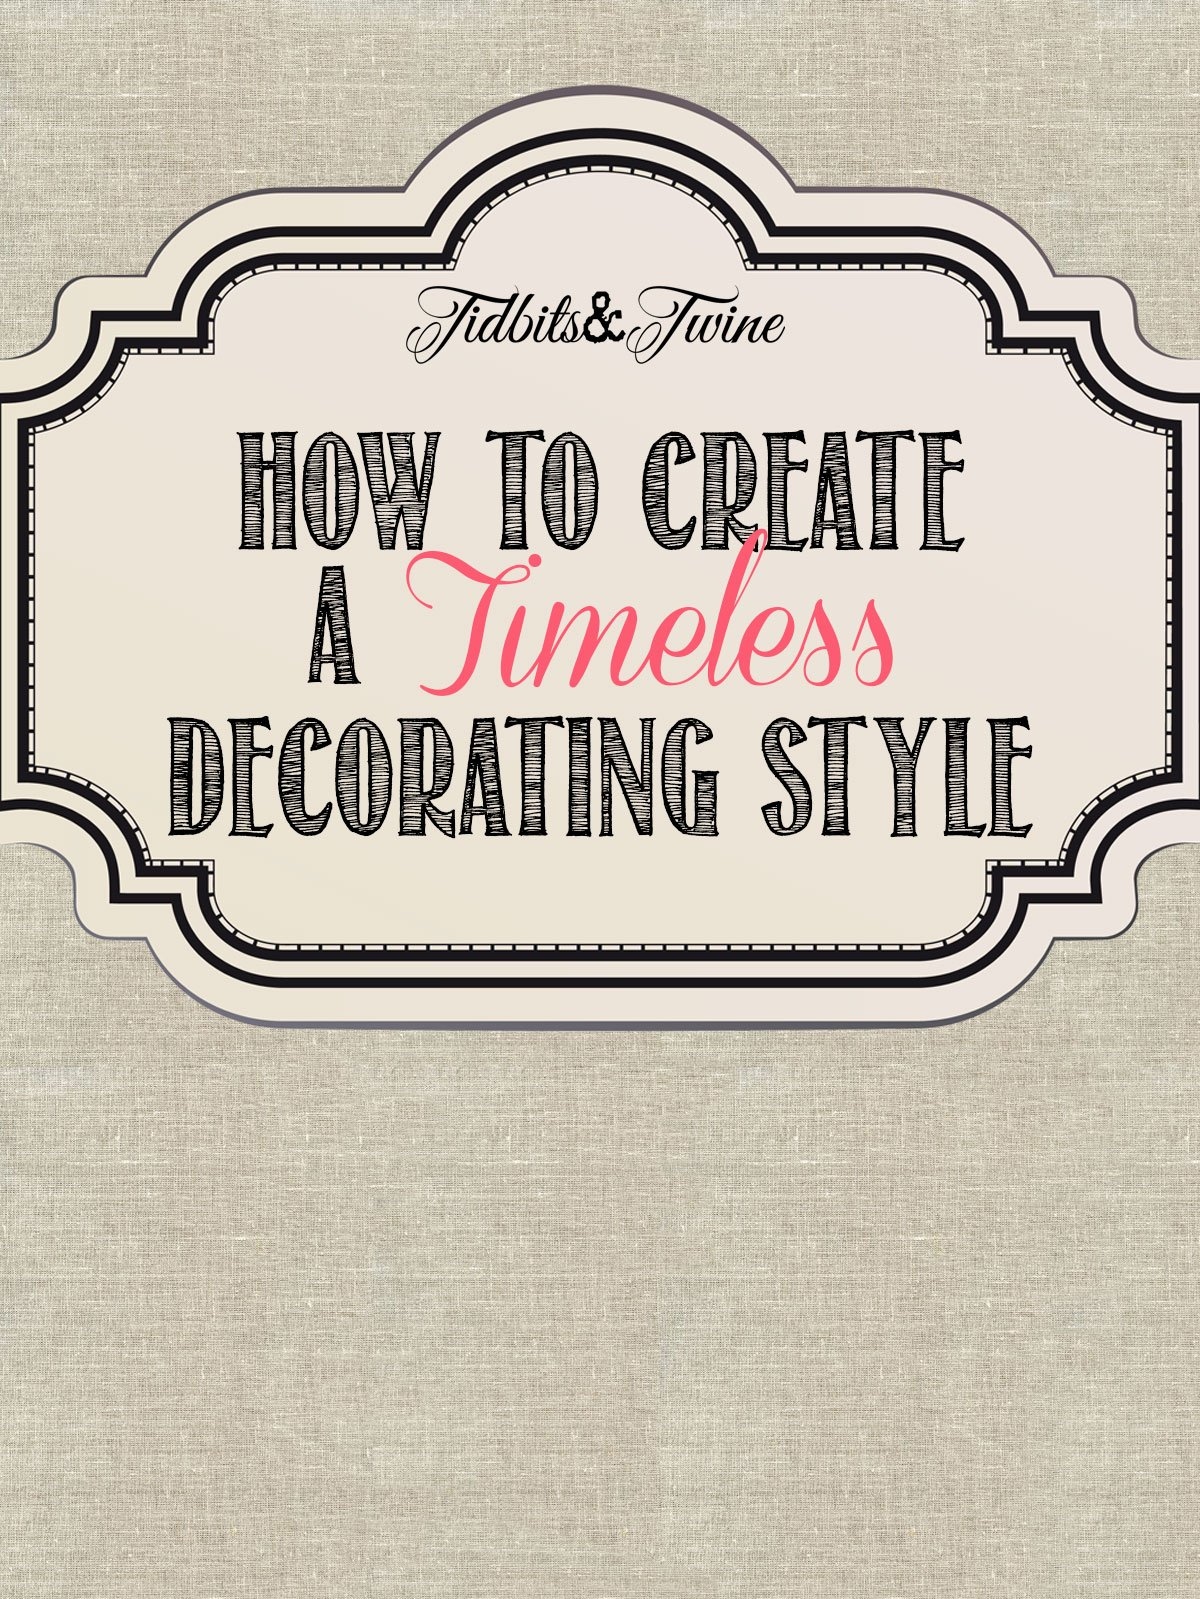 TIDBITS&TWINE---How-to-Create-a-Timeless-Decorating-